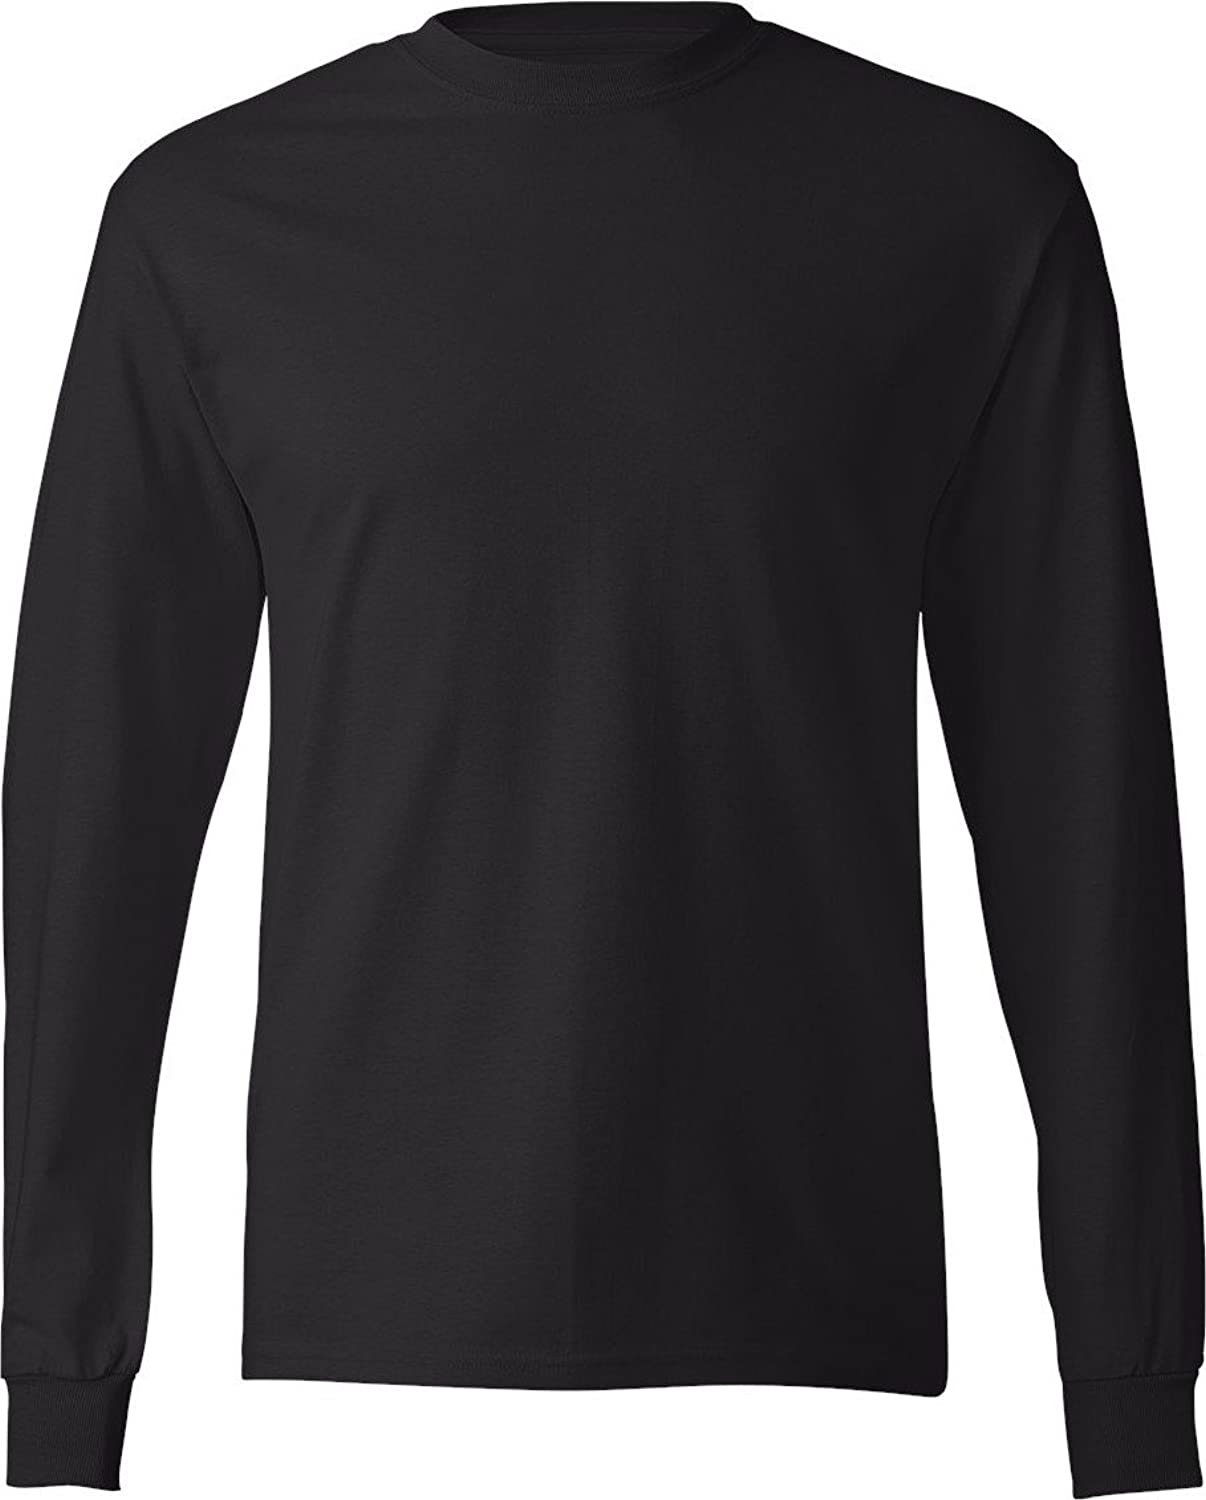 Free shipping and returns on Men's Black Shirts at wilmergolding6jn1.gq Skip navigation. Reserve Online & Try in Store. Exclusively on our mobile app. Find out more. Designer. Short Sleeve Long Sleeve. Show Feature. Breathable Moisture Wicking Quick Dry .